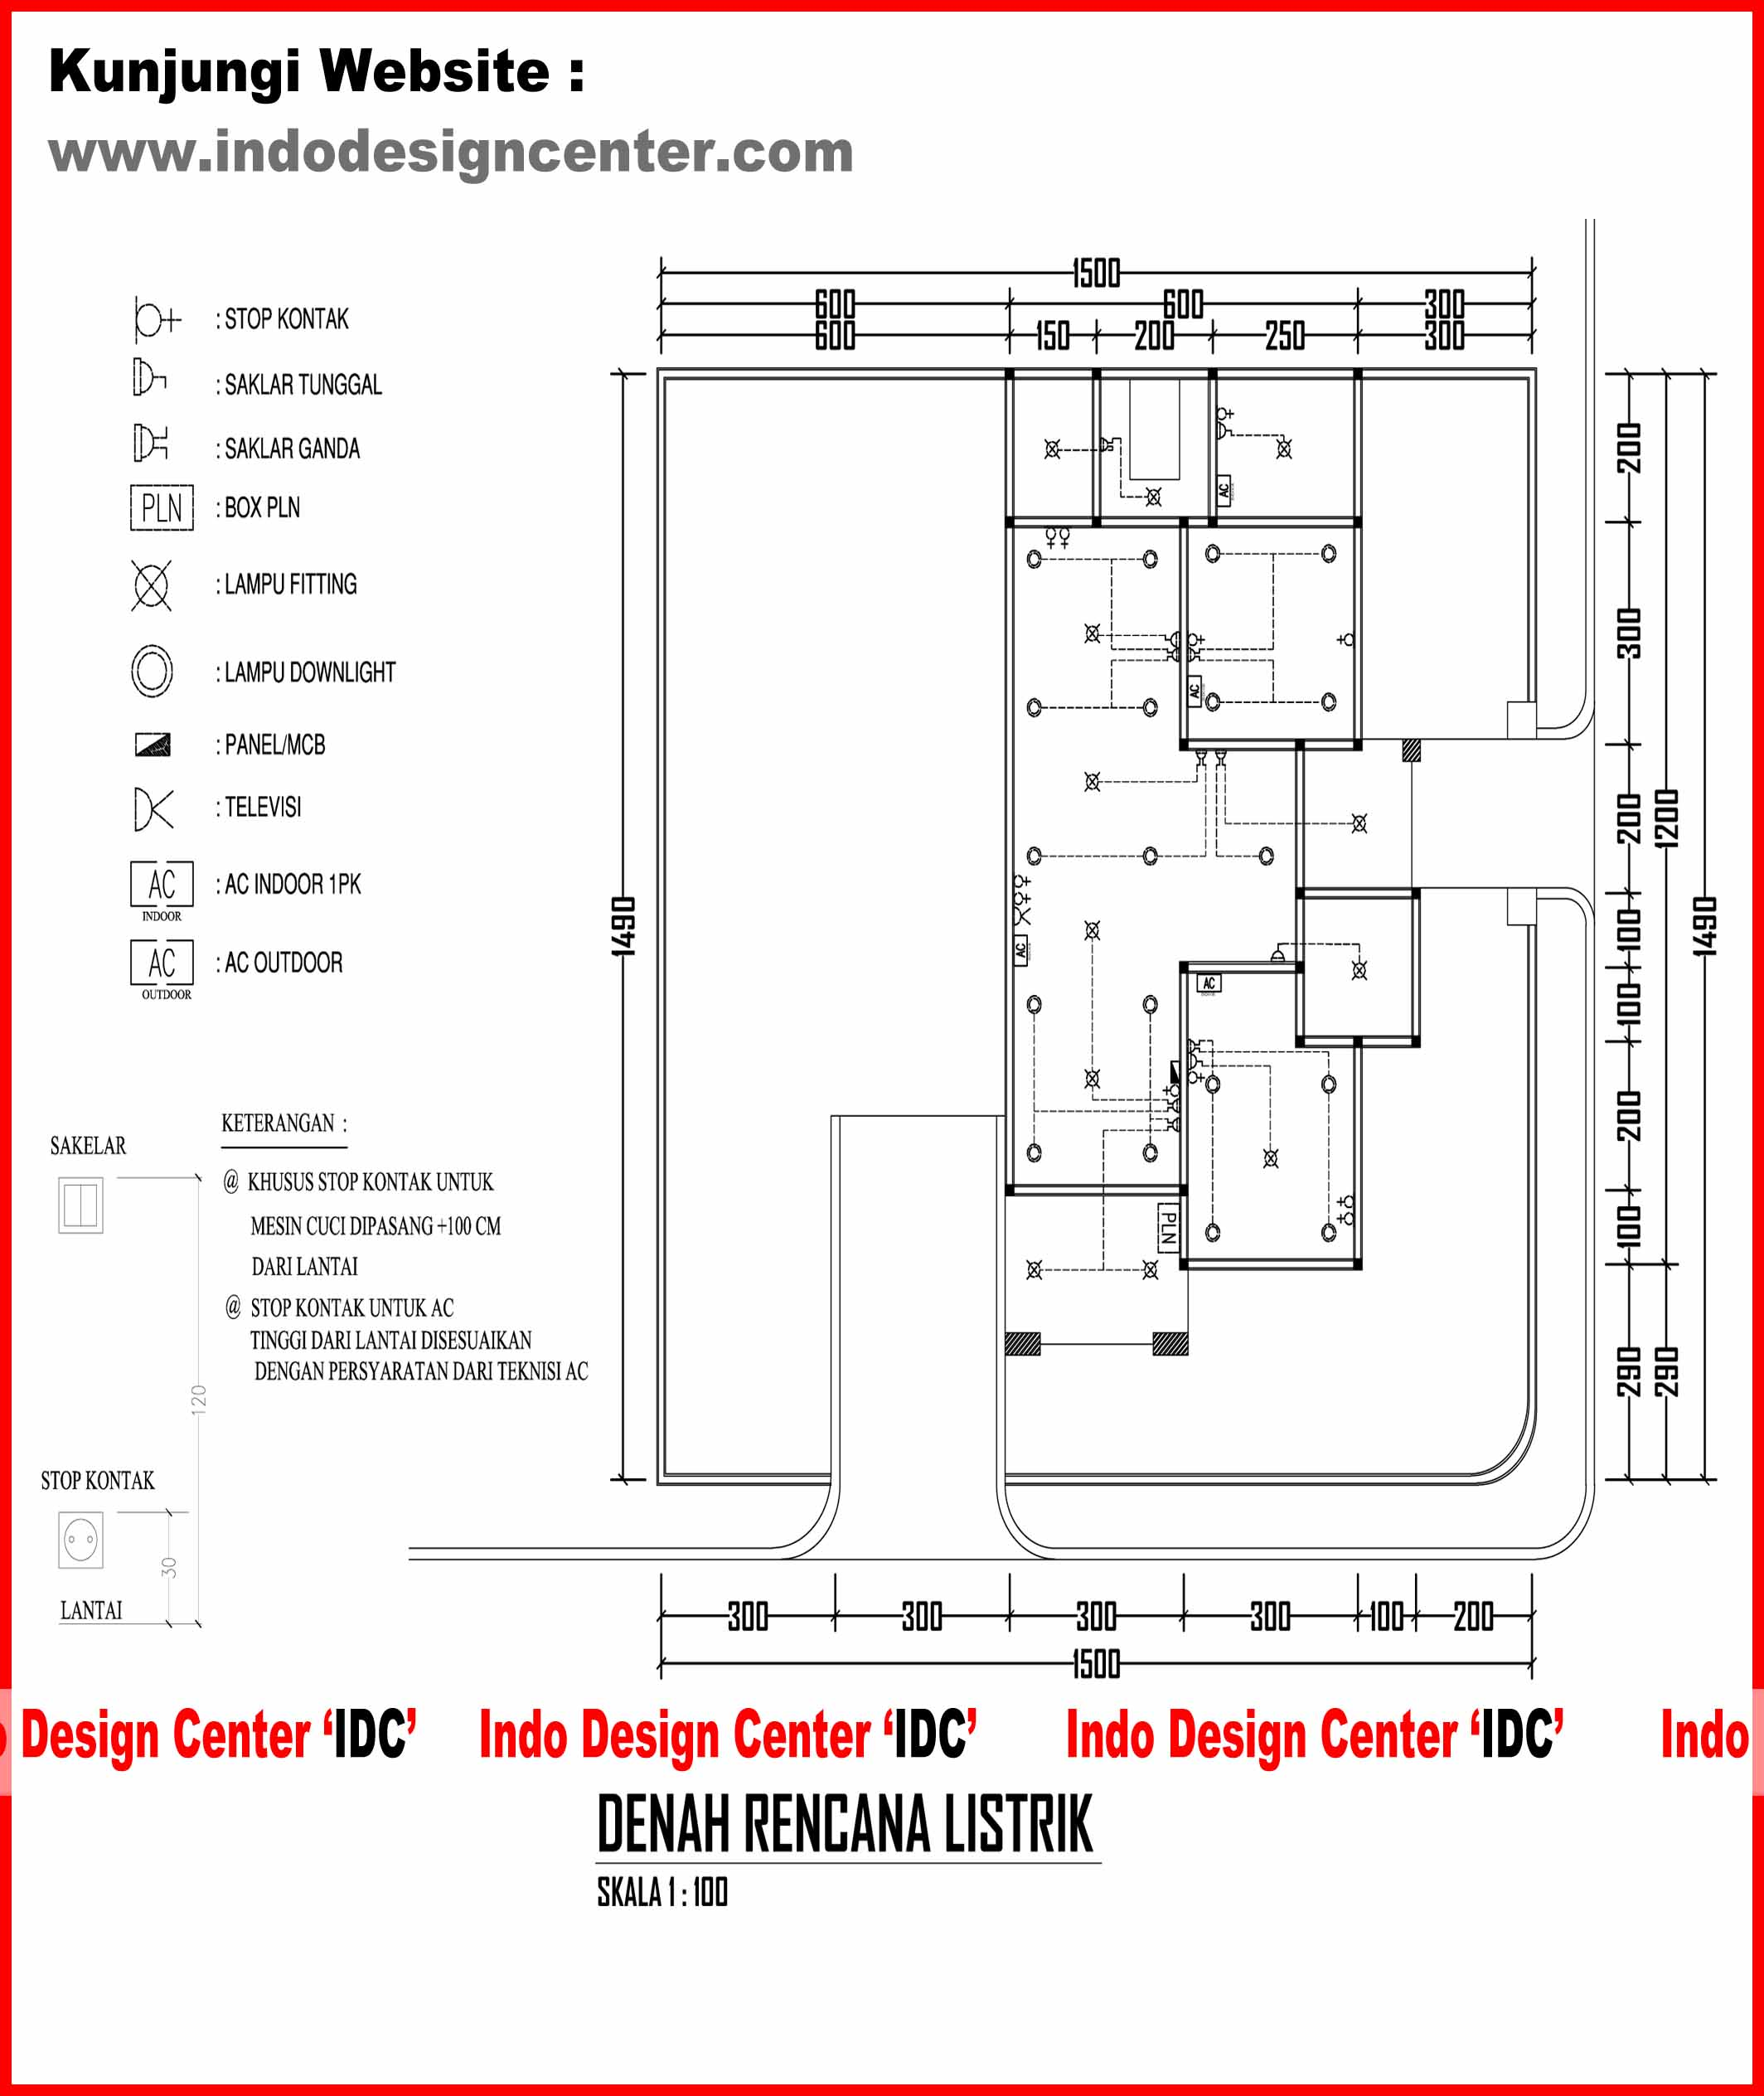 Diagram Instalasi Listrik 3 Phase Gallery How To Guide And Refrence